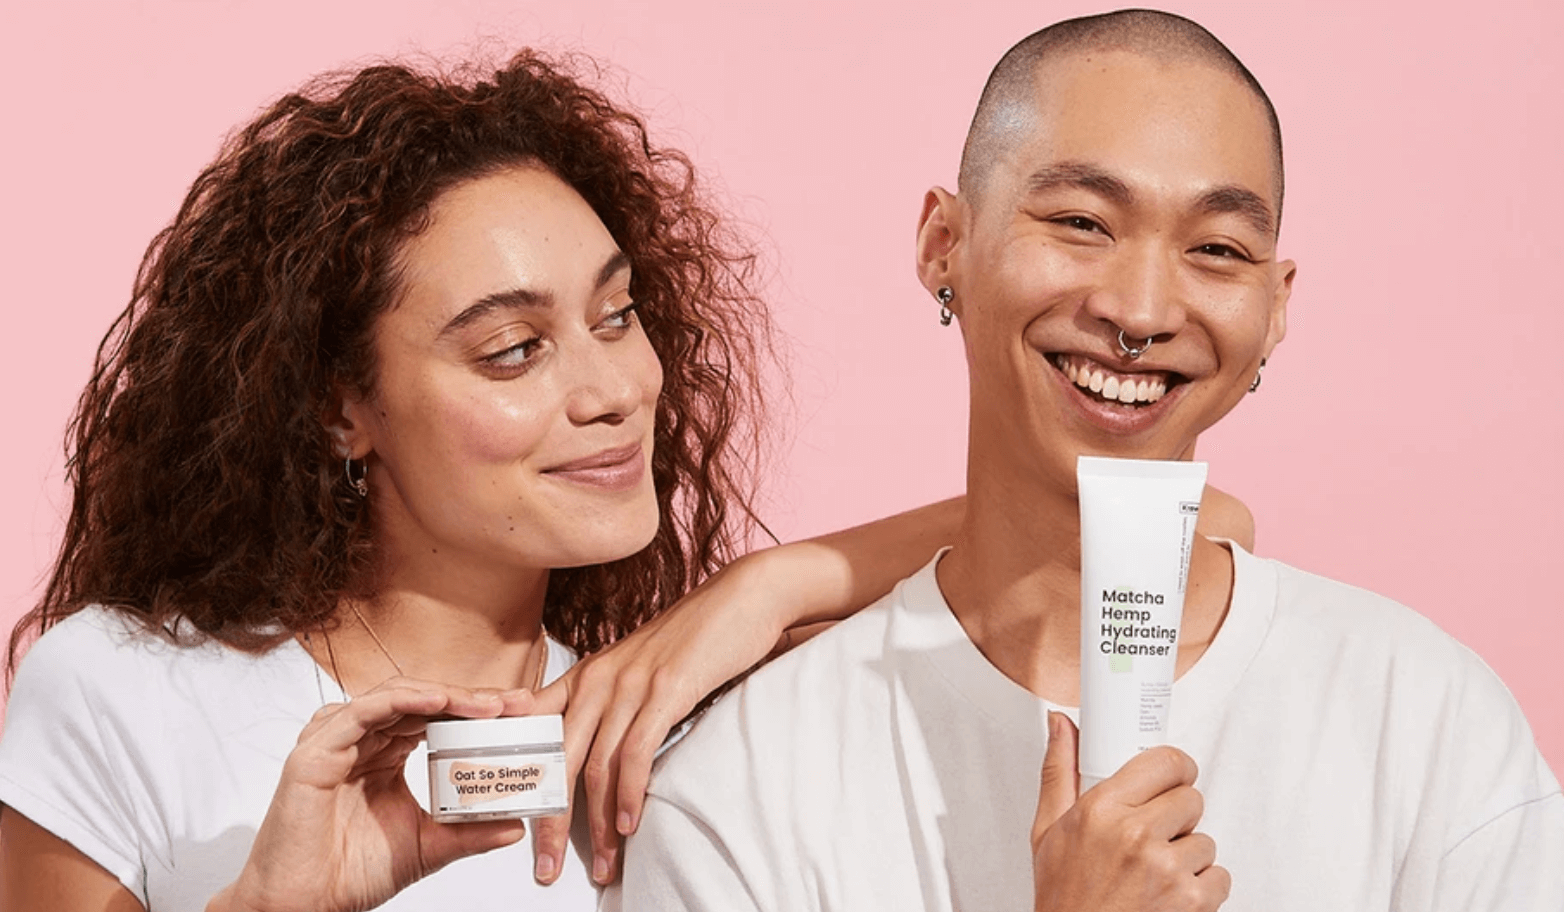 10 Sustainable Beauty Brands You Should Know